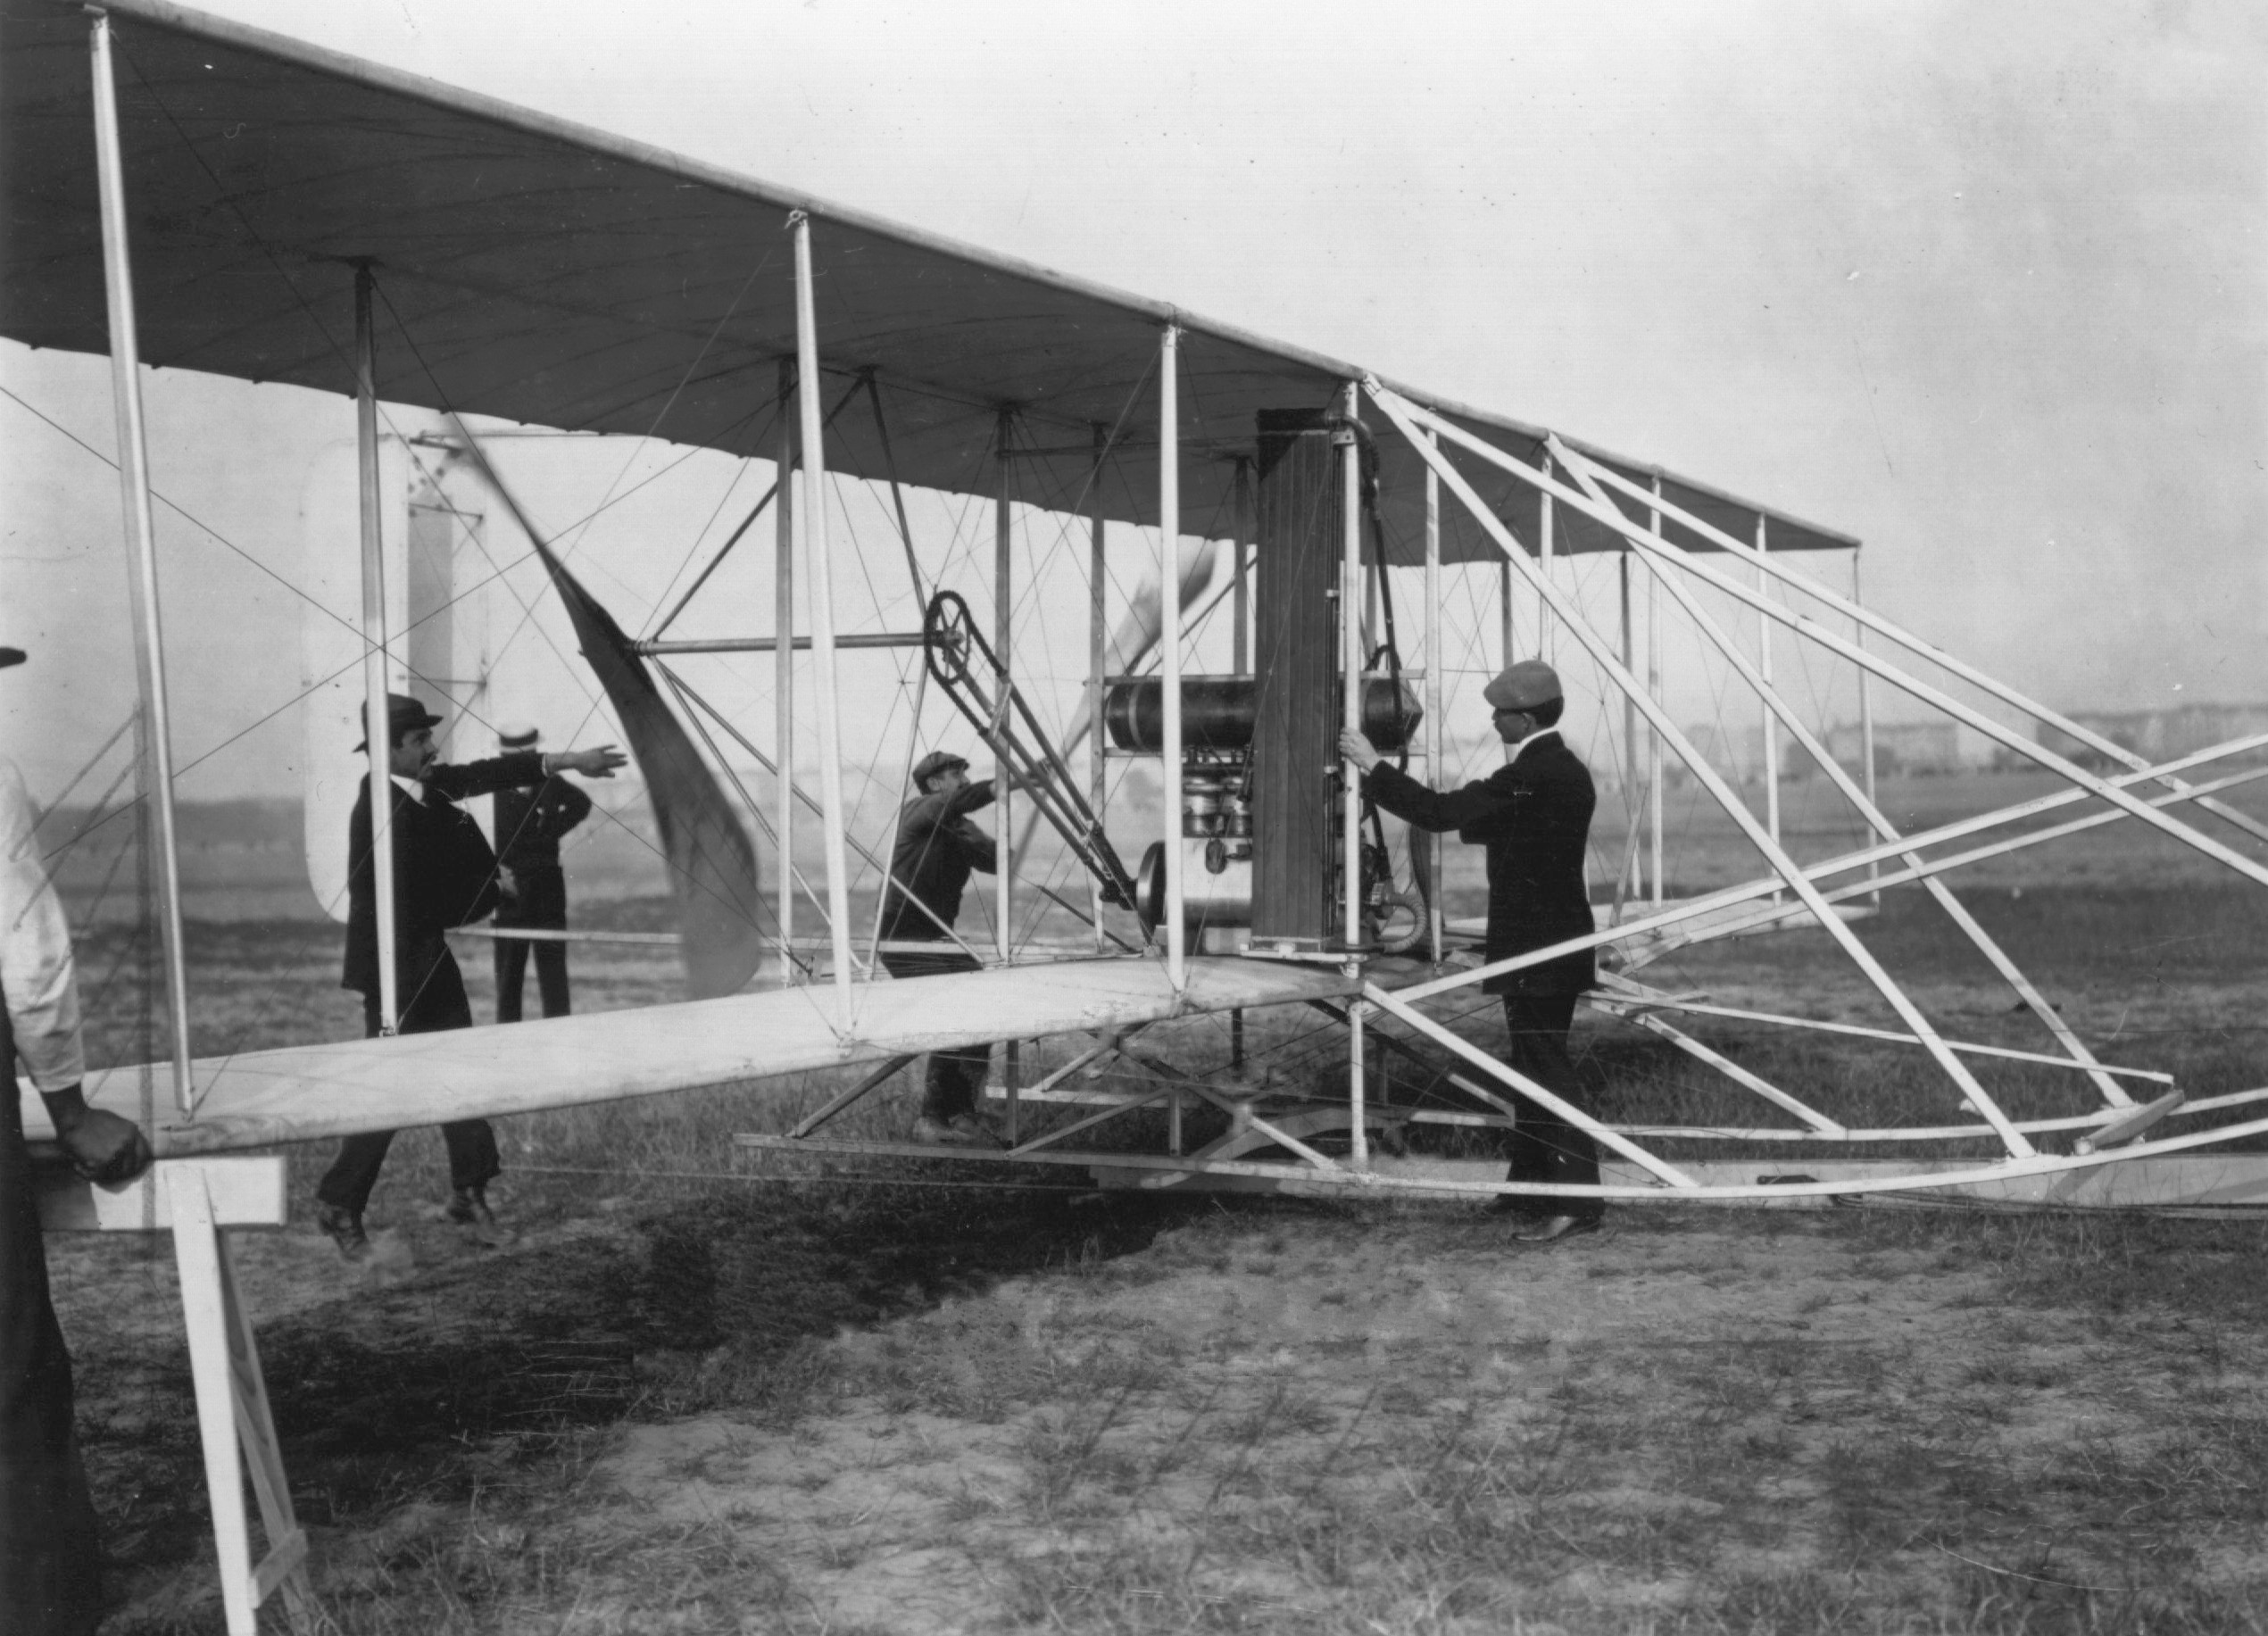 an analysis of the invention of flight by wilbur and orville wright Wright brothers: wright brothers wilbur and orville were the sons of milton wright wright glider side view of wilbur wright gliding in level flight in kitty.